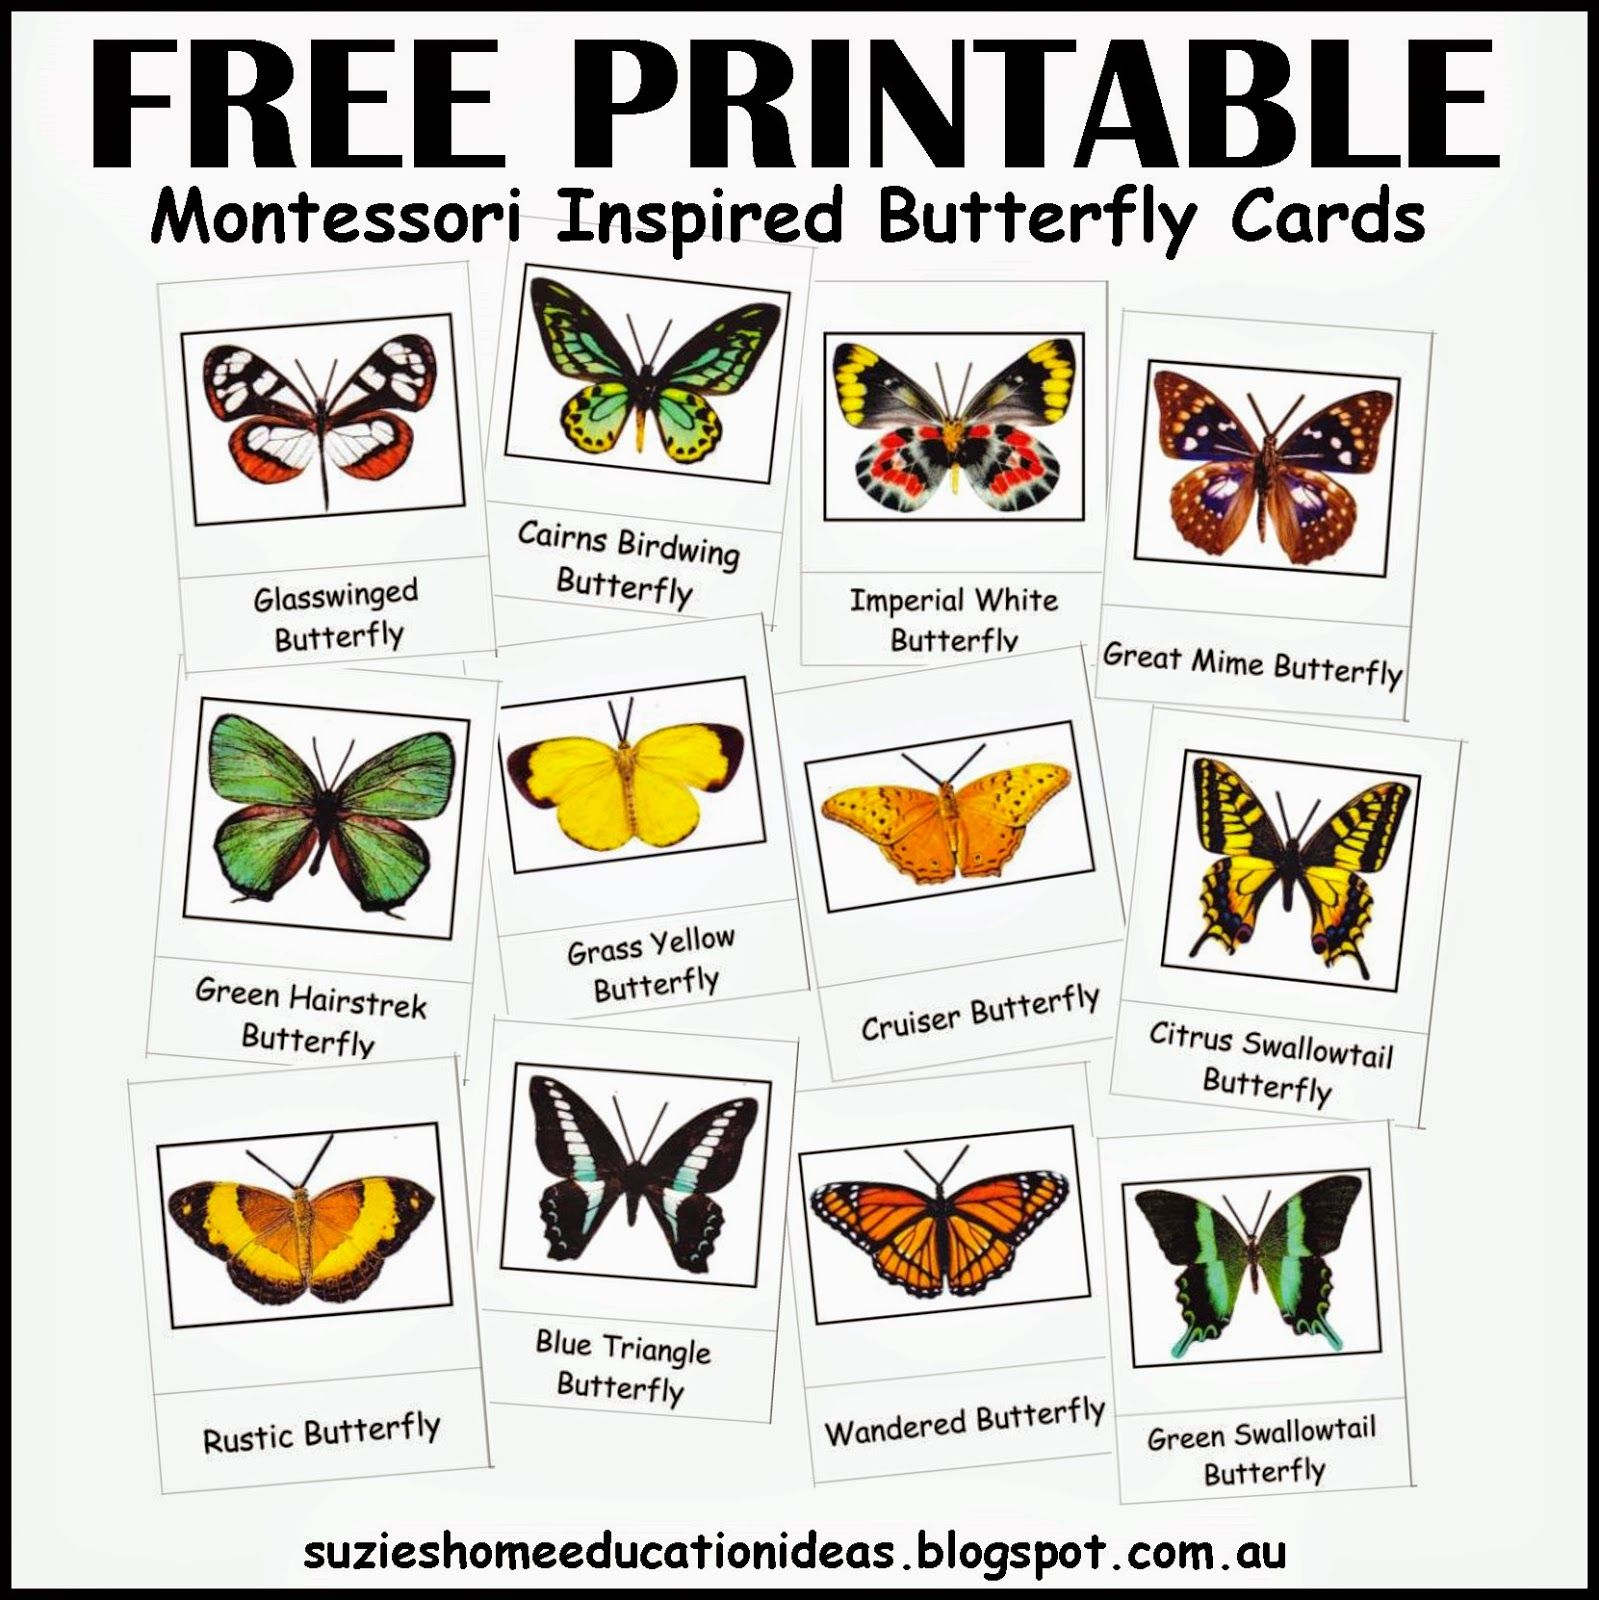 Suzie's Home Education Ideas: Part 2 - A hands-on Study about Butterflies